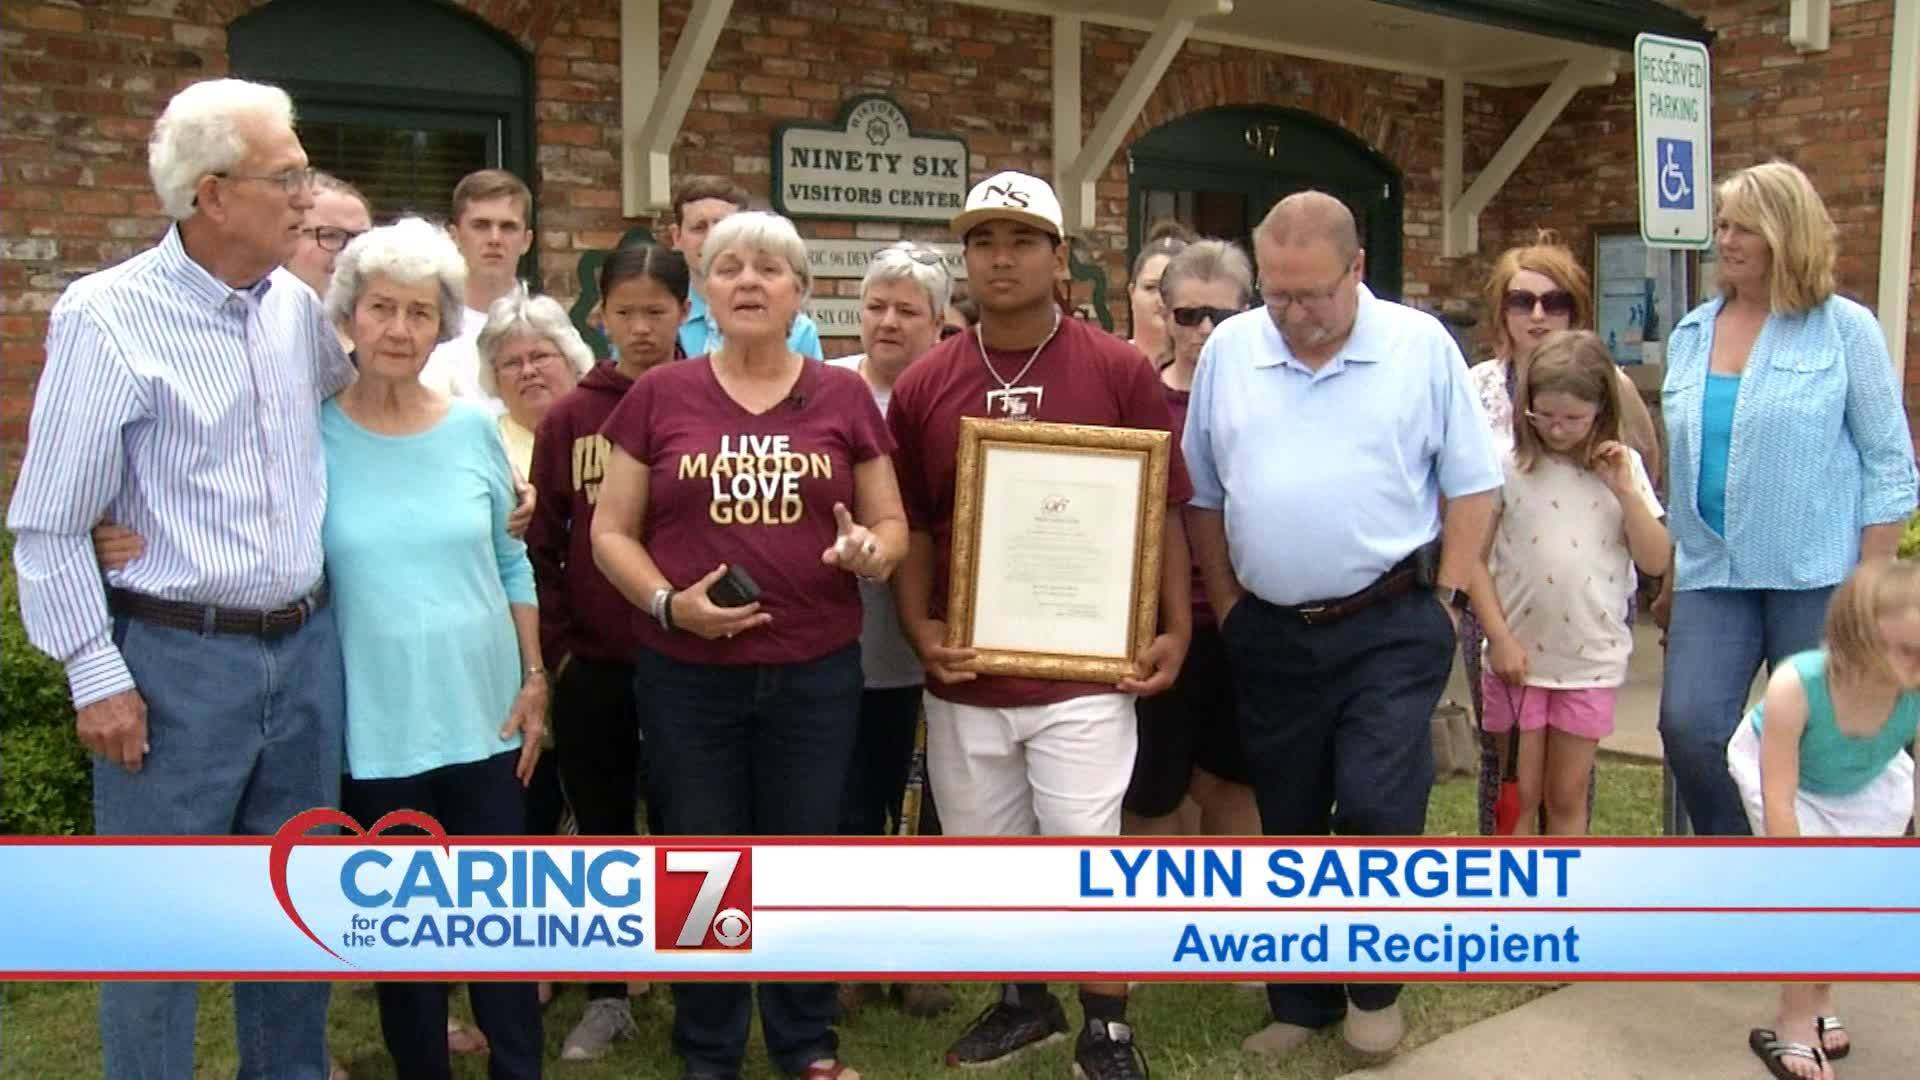 May 2019 Caring for the Carolinas Award Winner